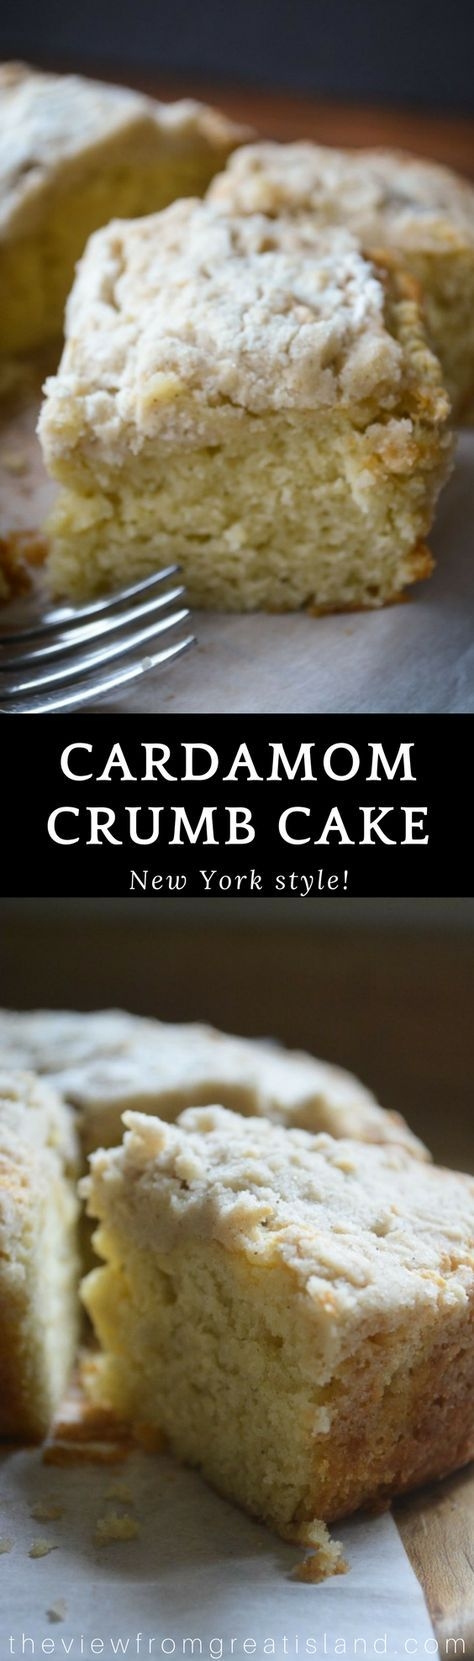 Cardamom Crumb Cake ~ this moist and pillowy New York style crumb cake takes coffee cake to a whole new level with the subtle warmth of cardamom. #cake #cardamom #coffeecake #crumbcake #newyorkcrumbcake #dessert #breakfast #cardamomcake #bestcrumbcake #spicecake